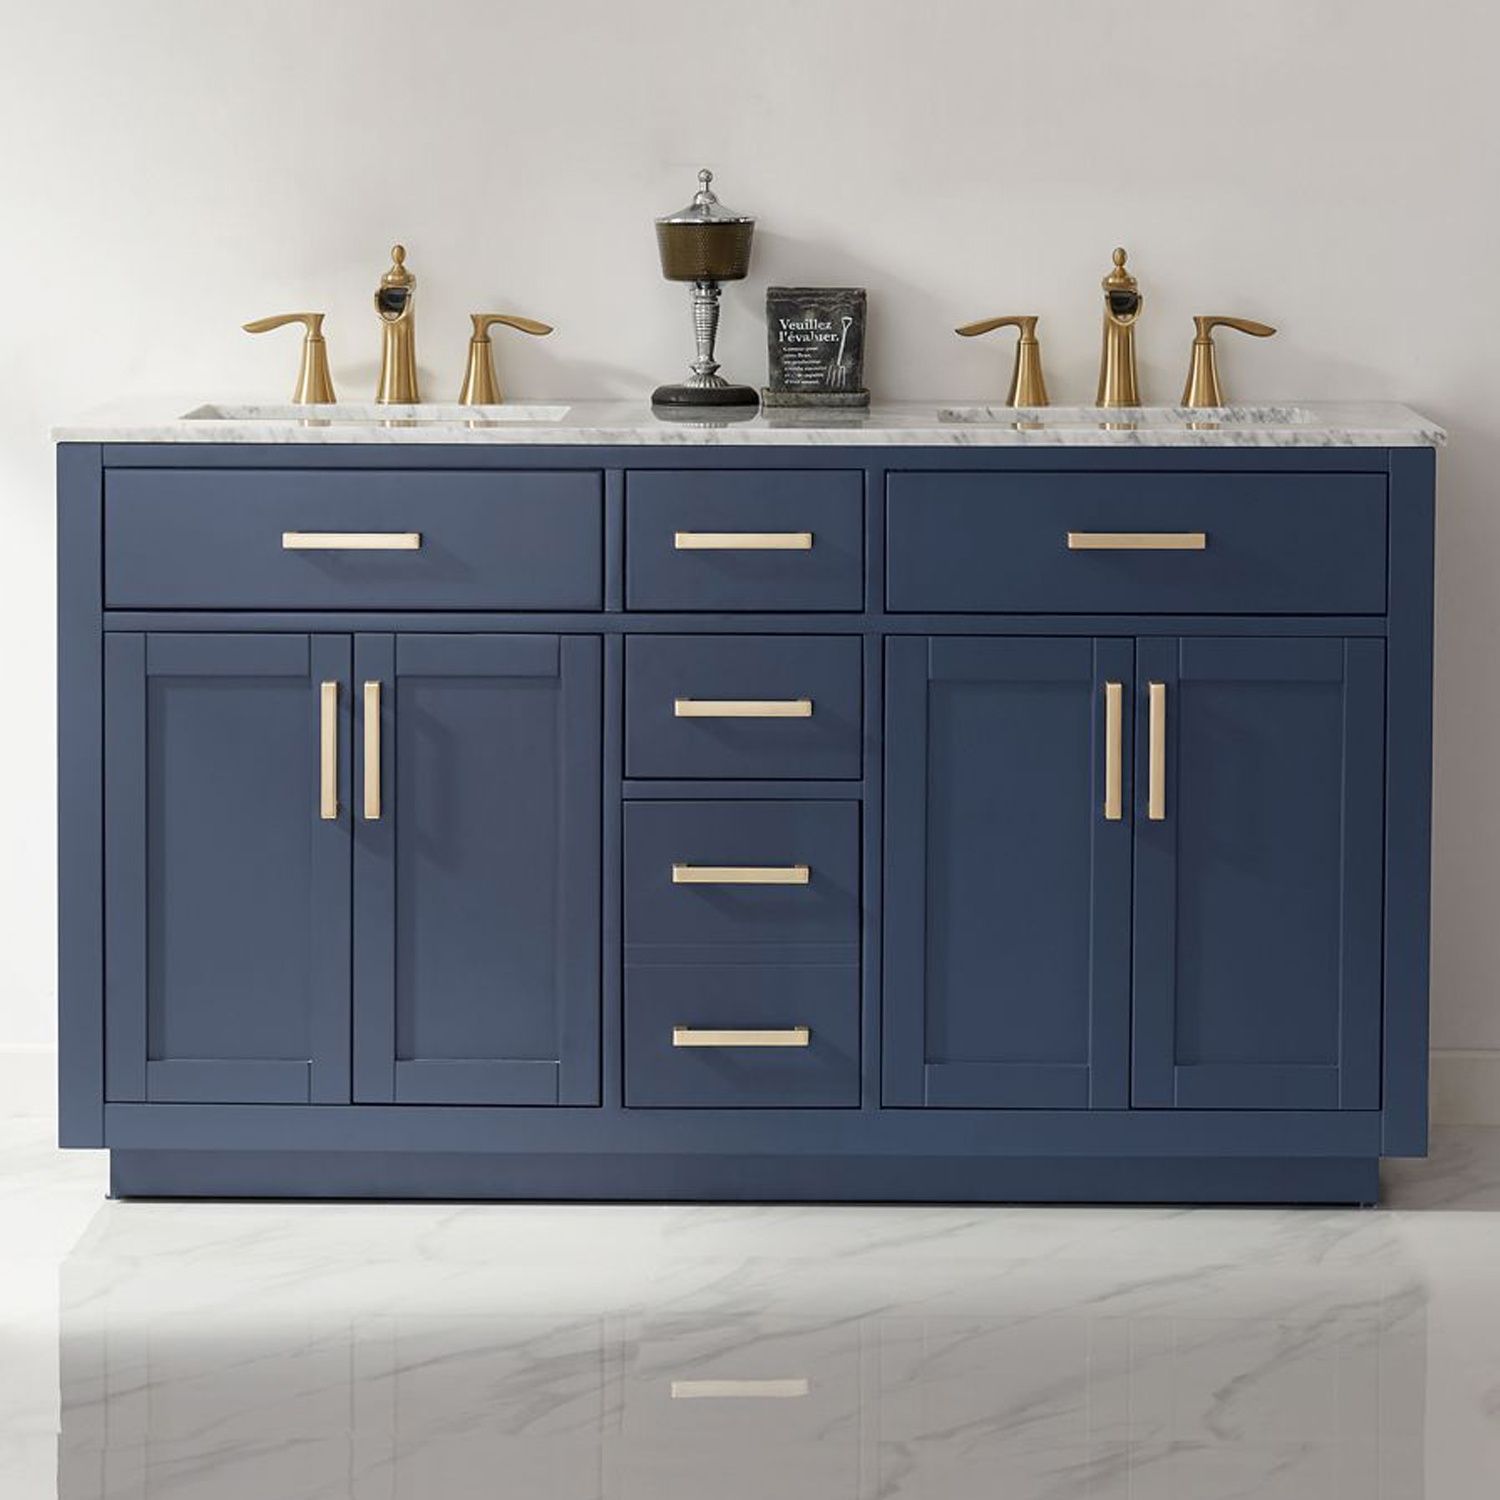 """Issac Edwards Collection 60"""" Double Bathroom Vanity Set in RoyalBlue and Carrara White Marble Countertop without Mirror"""